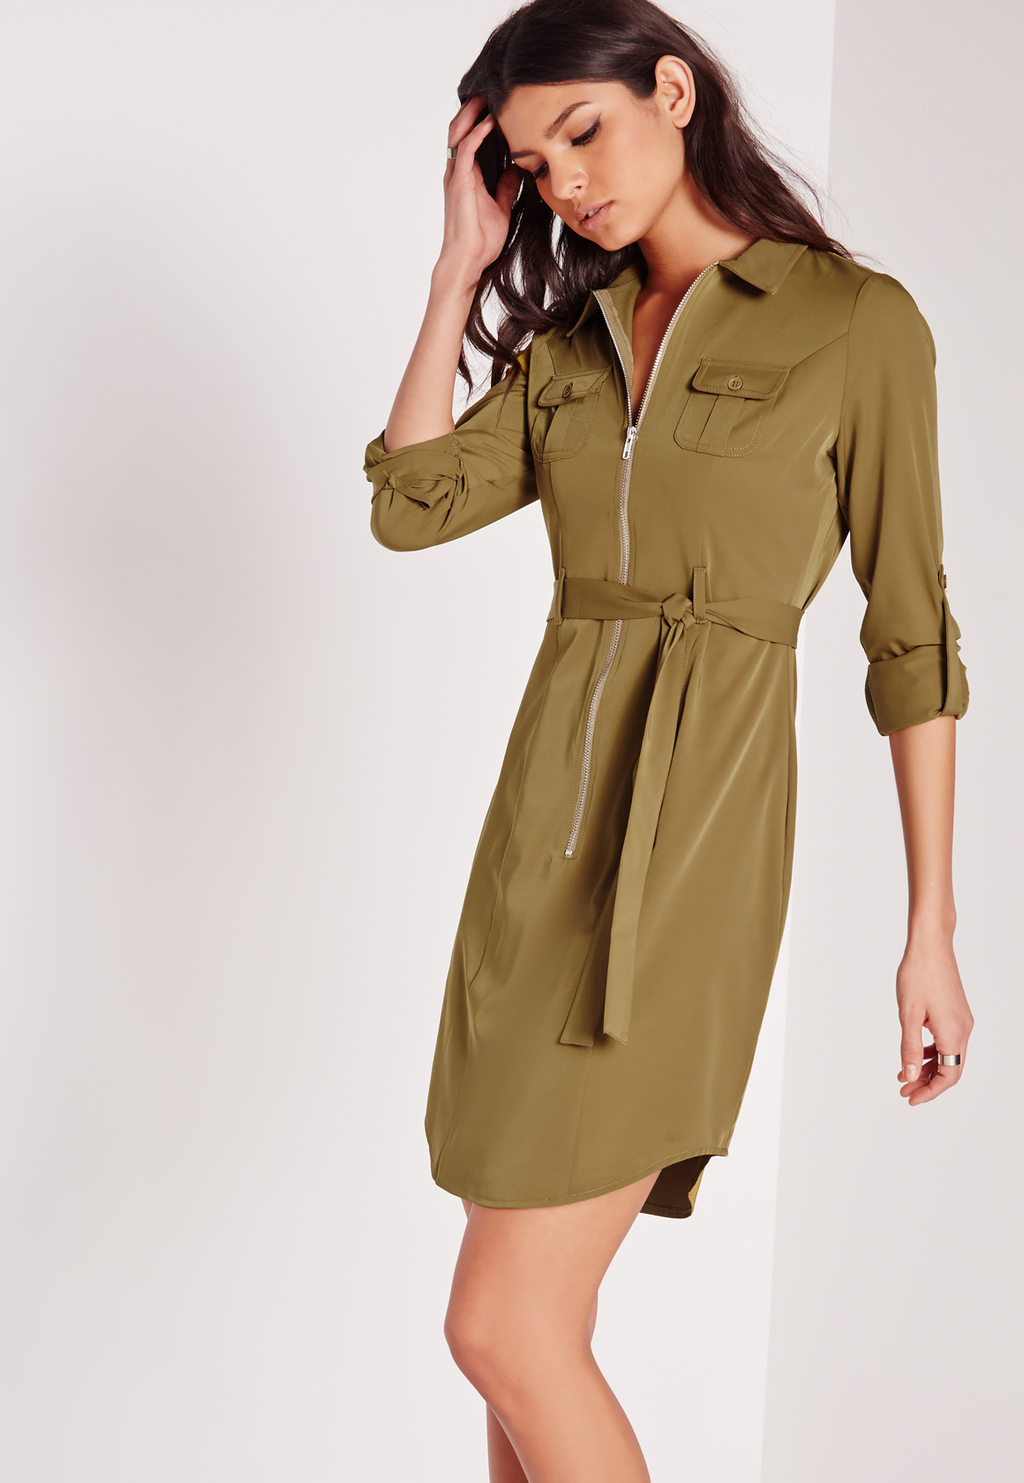 Tall Exclusive Zip Through Mini Shirt Dress Khaki, Beige - style: shirt; neckline: shirt collar/peter pan/zip with opening; pattern: plain; waist detail: belted waist/tie at waist/drawstring; bust detail: buttons at bust (in middle at breastbone)/zip detail at bust; predominant colour: khaki; occasions: casual; length: just above the knee; fit: body skimming; fibres: viscose/rayon - 100%; sleeve length: 3/4 length; sleeve style: standard; pattern type: fabric; texture group: other - light to midweight; embellishment: zips; season: s/s 2016